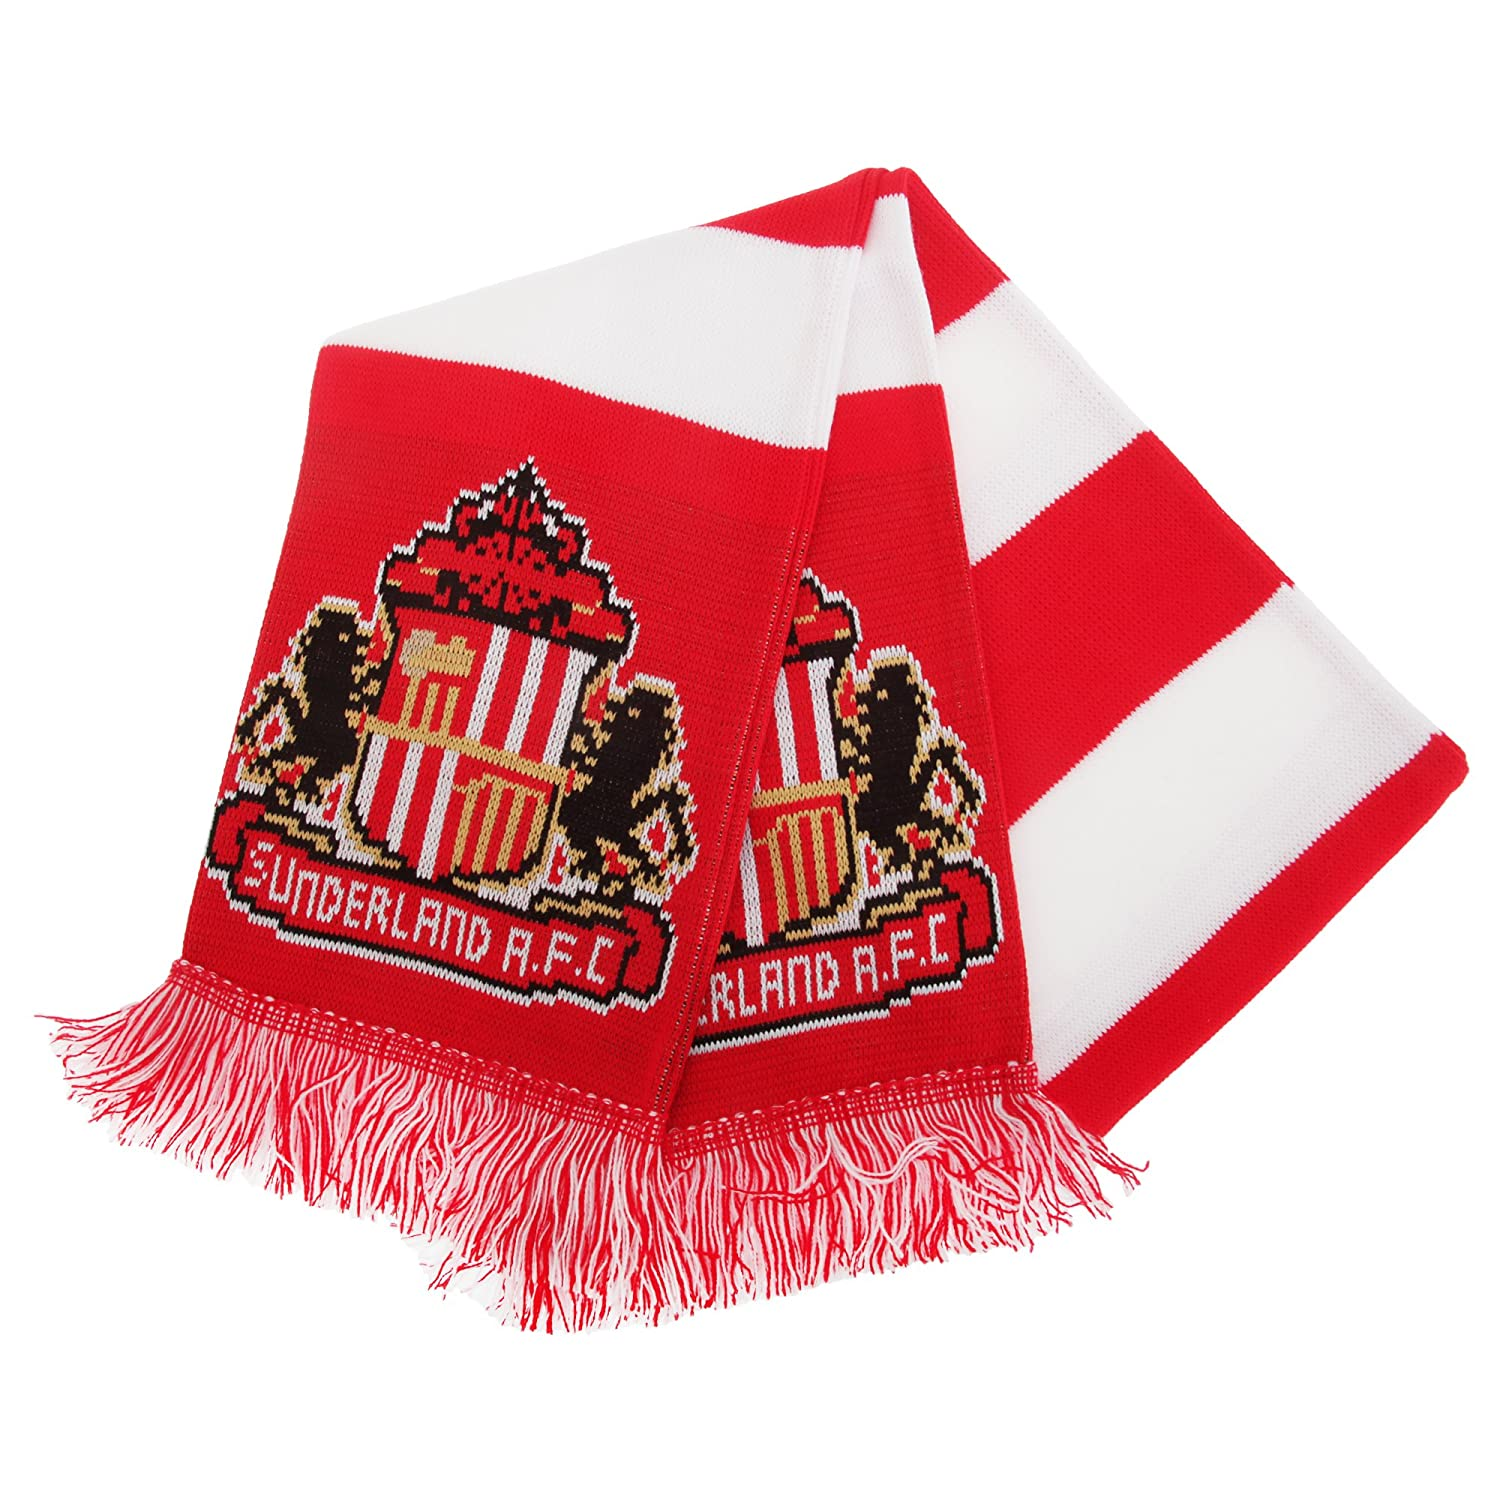 Sunderland AFC Official Football Supporters Crest//Logo Bar Scarf